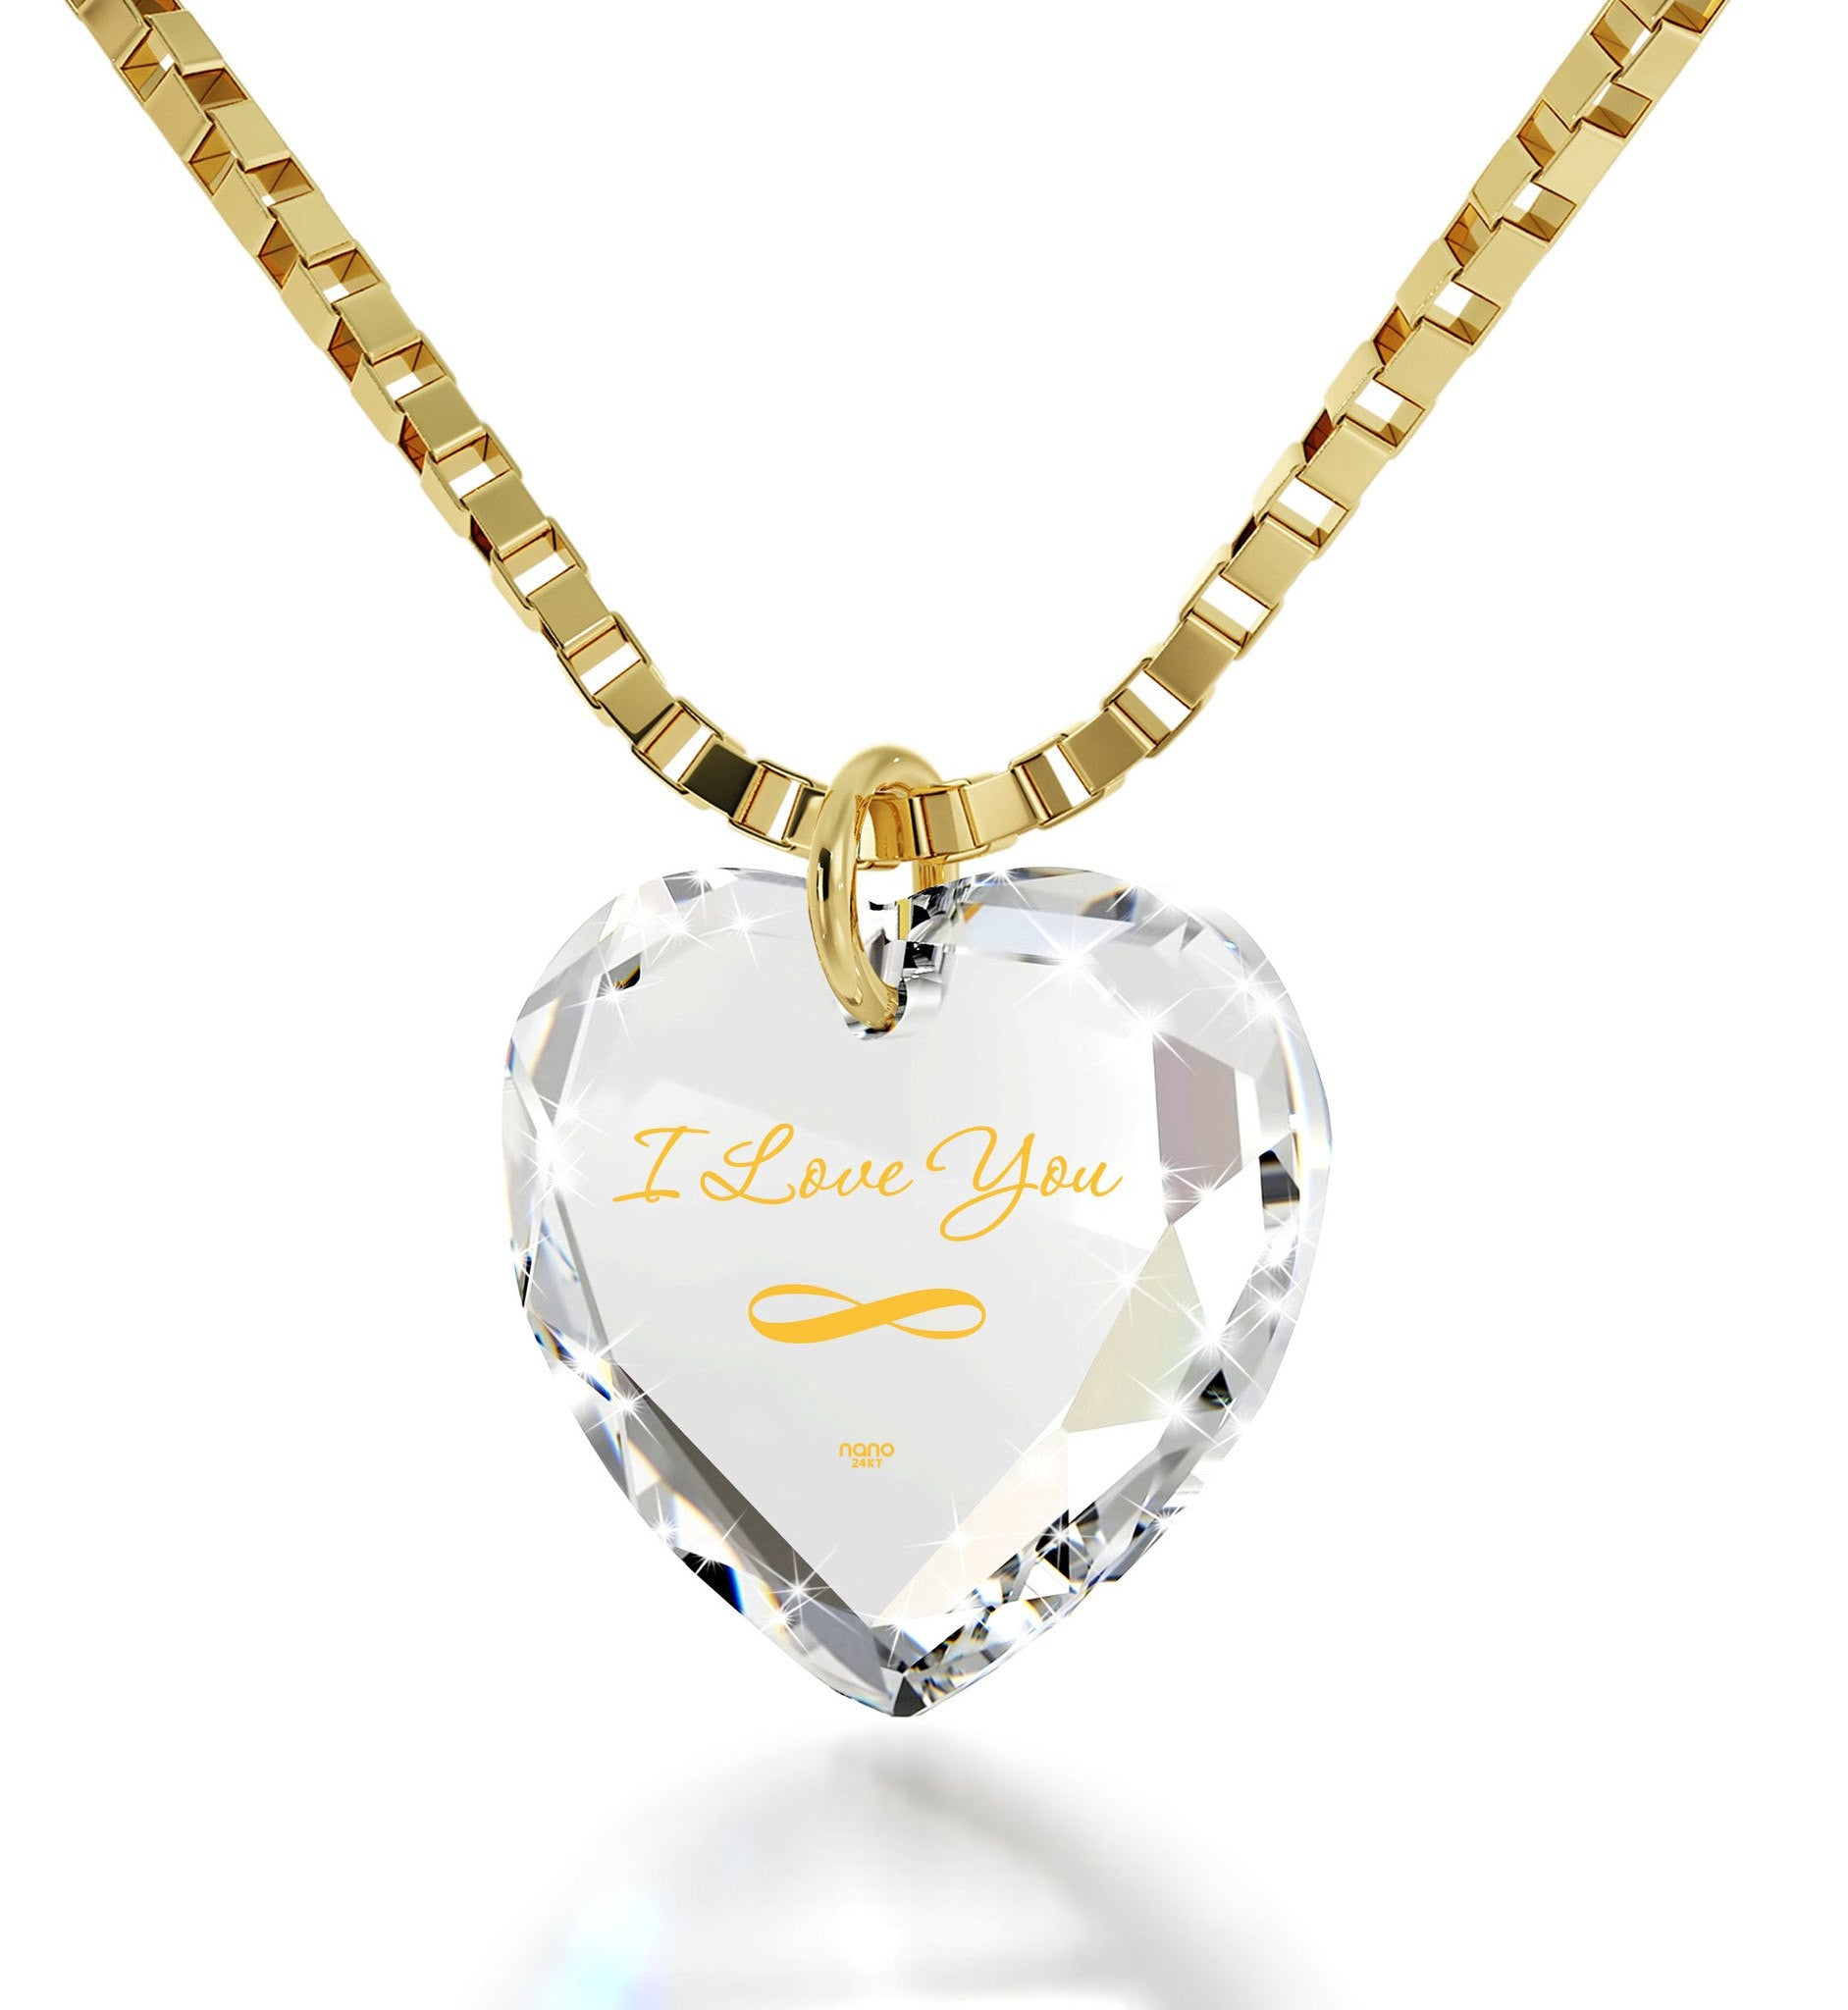 """I Love You Infinity"" Imprint, Top Gift Ideas for Women, Cool Xmas Presents, Swarovksi Crystal Jewelry"